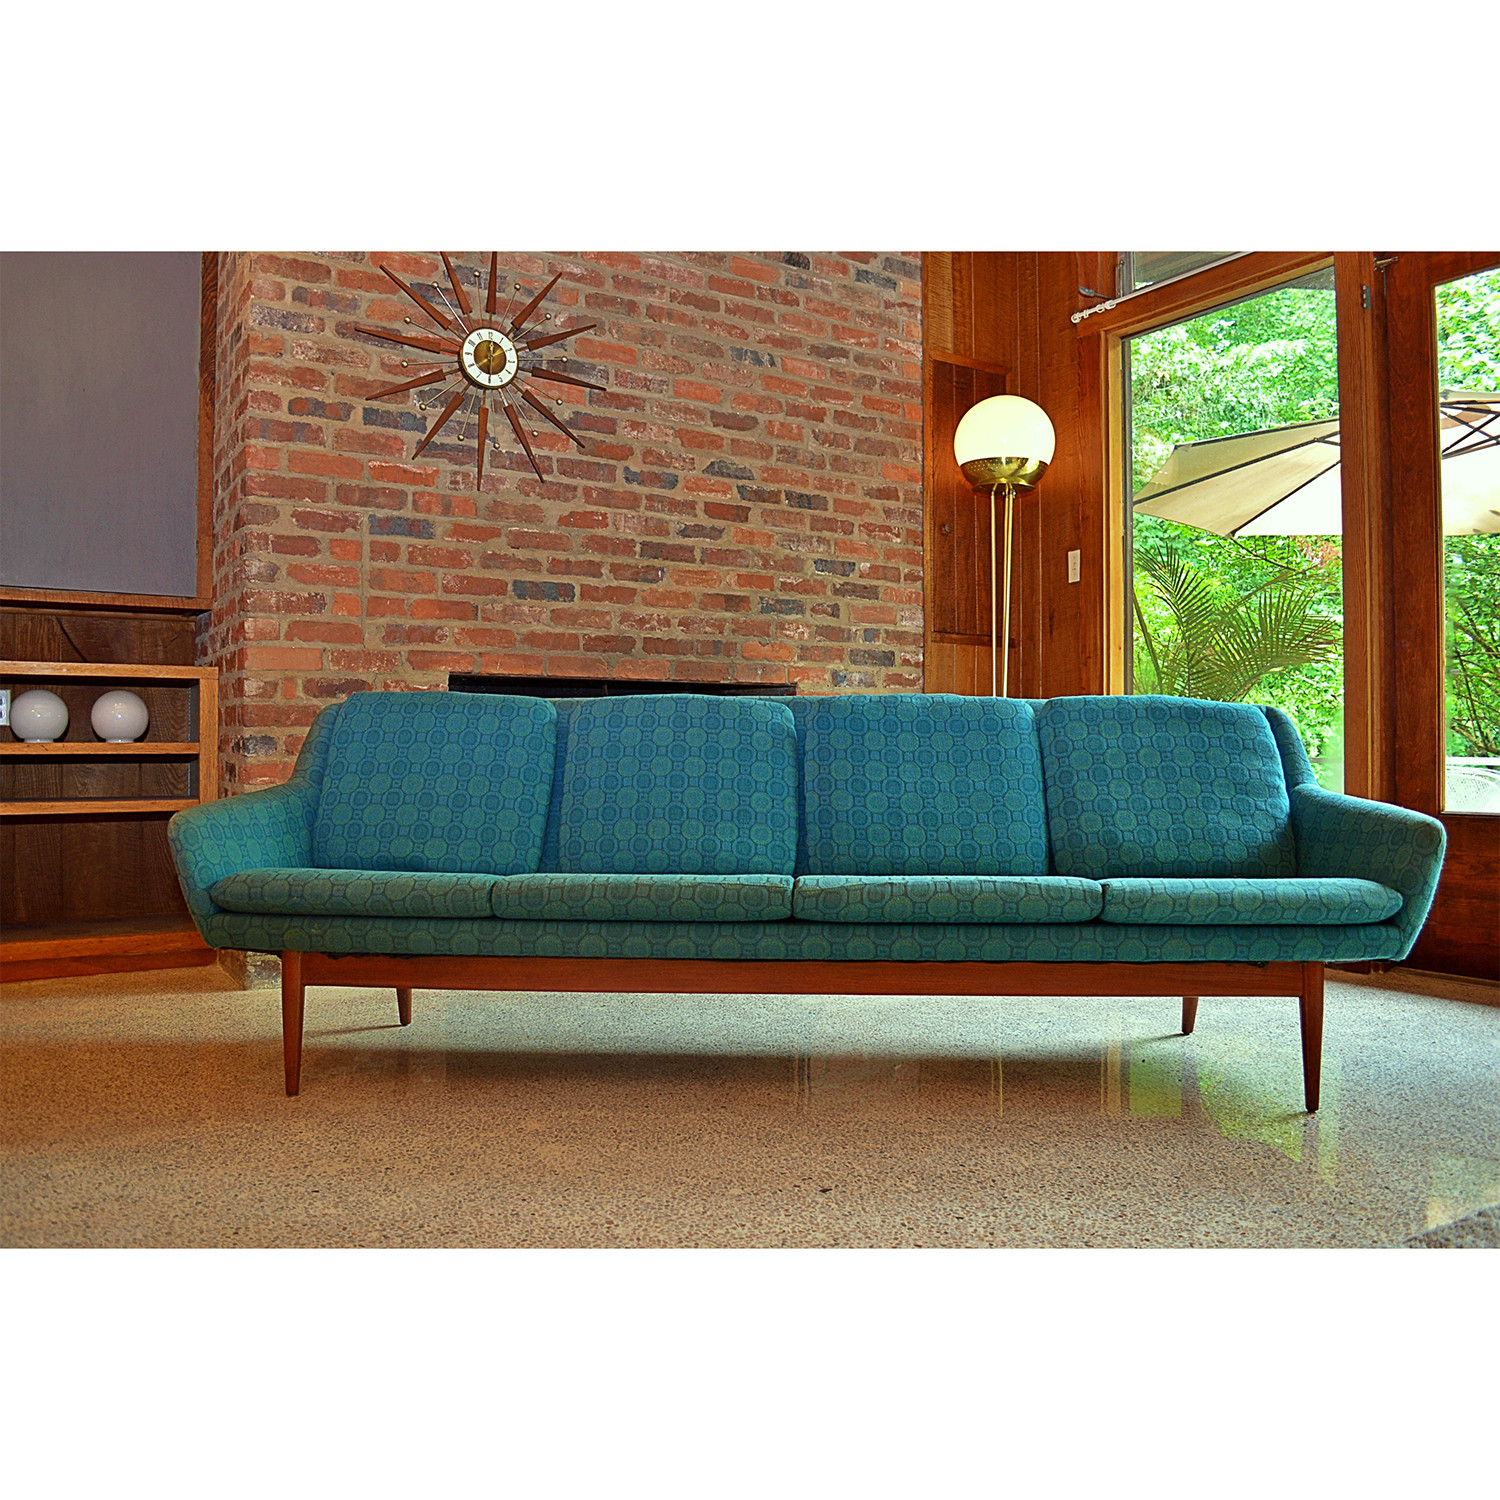 1960s Danish Sofa By L H Hielle